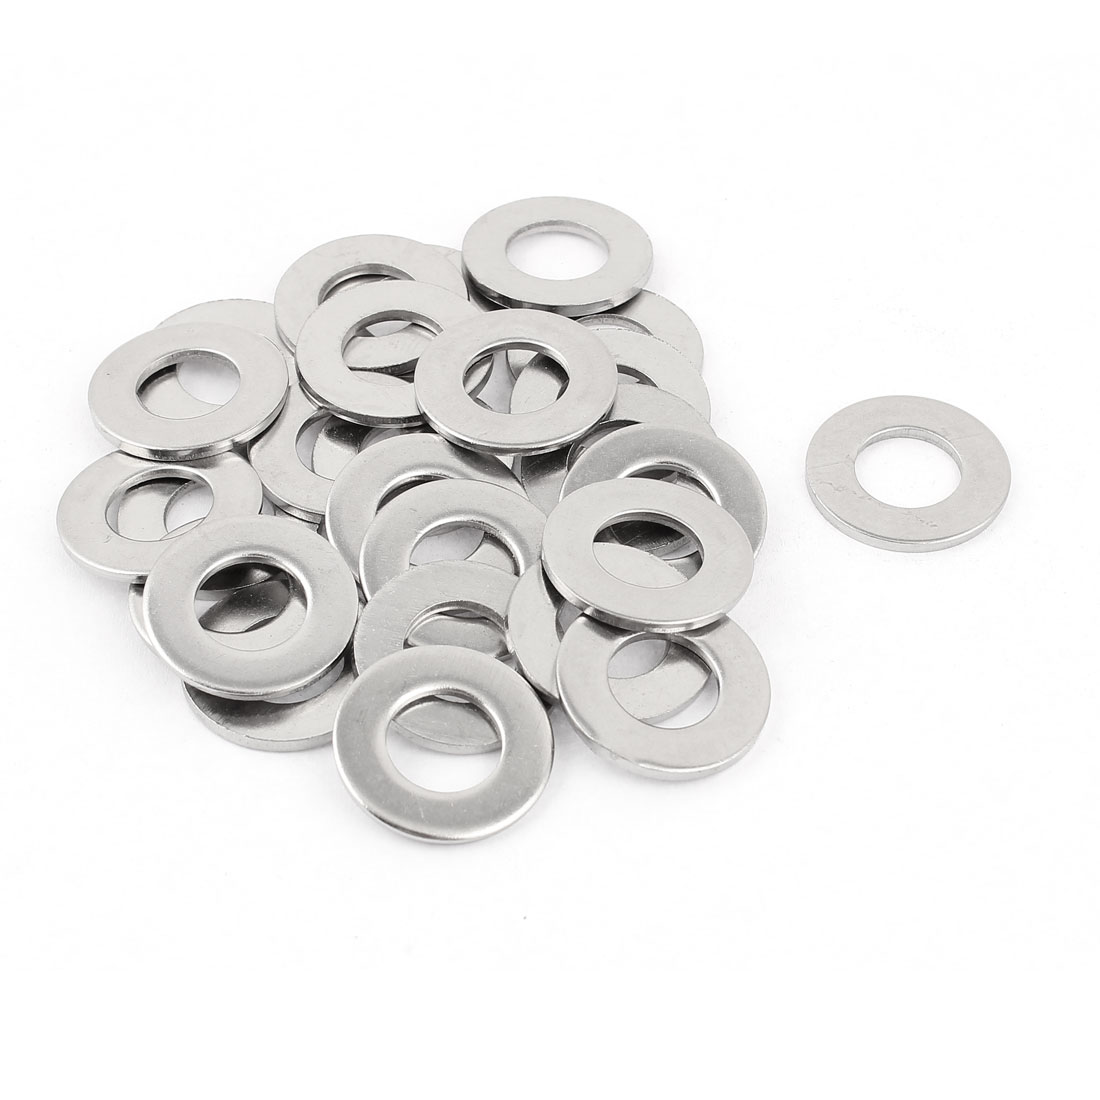 Uxcell M12 x 24mm x 2mm 304 Stainless Steel Flat Washer for Screw Bolt (25-pack)